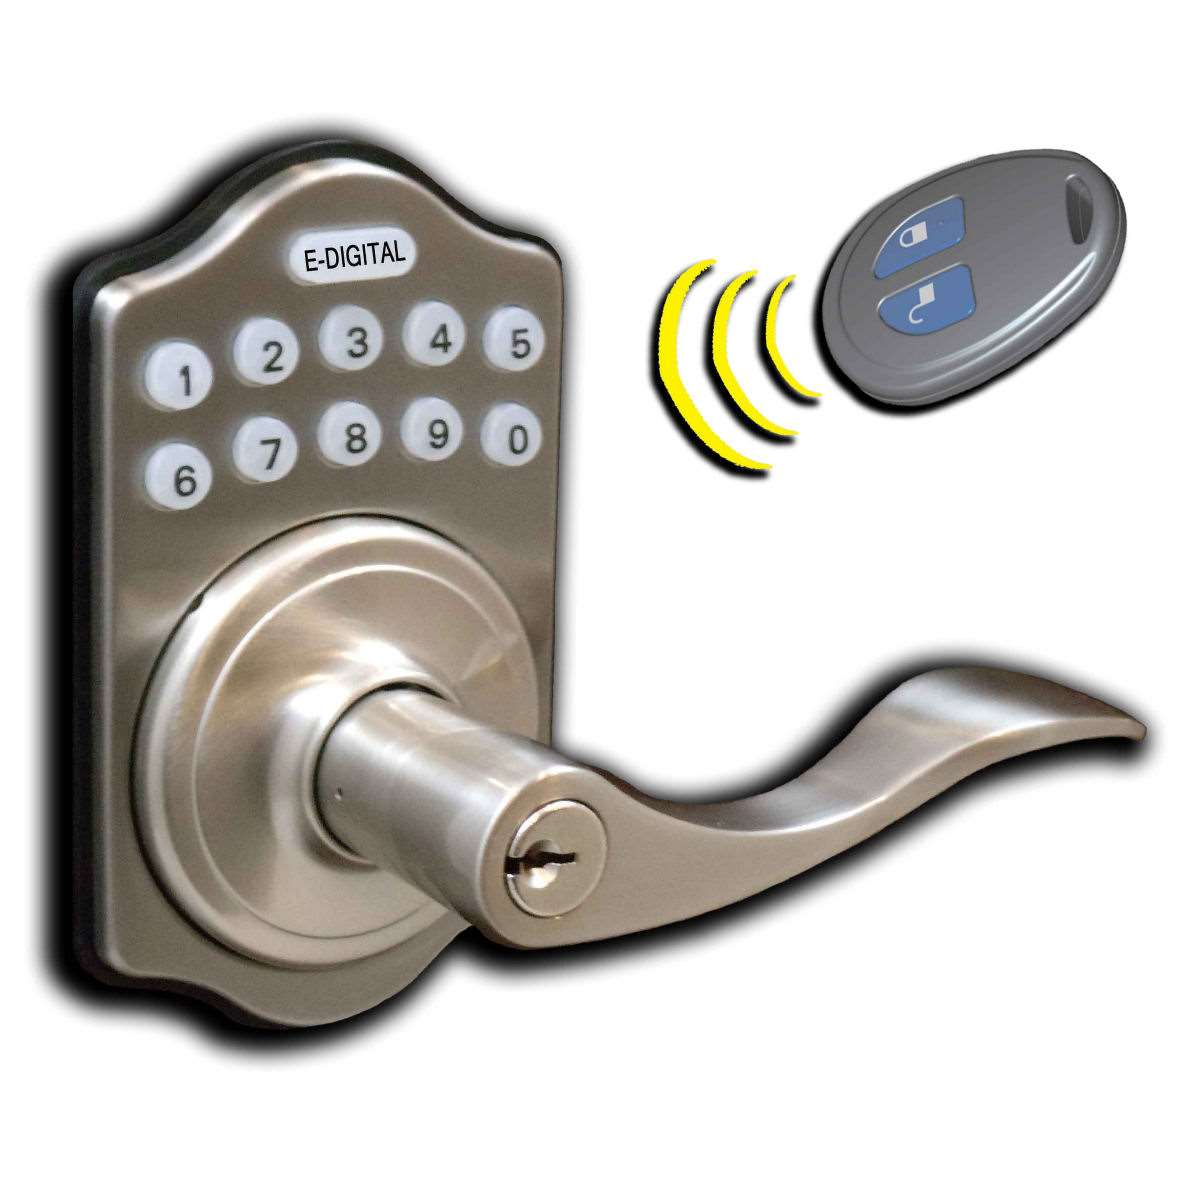 e digital e 985r electronic door lock  remote fob capable electronic locksets electronic locking differential